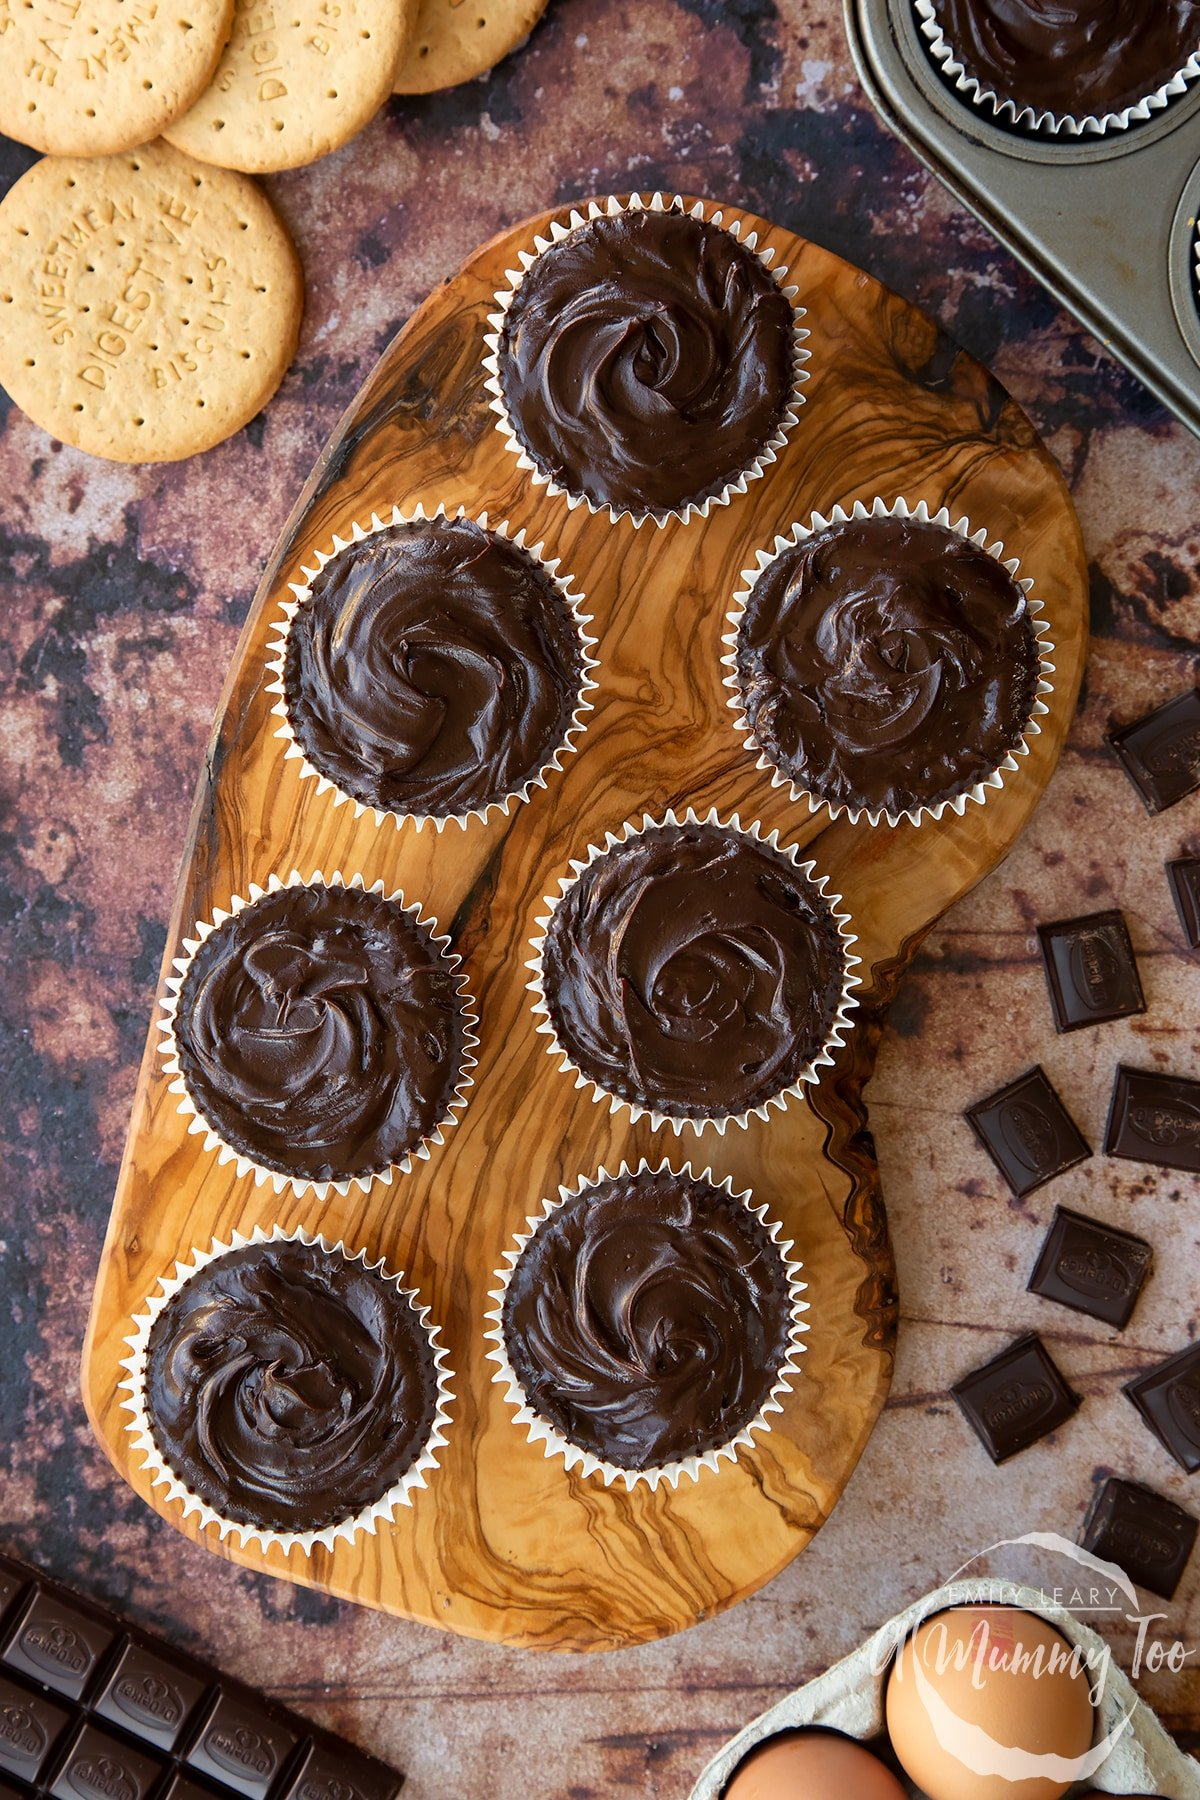 Chocolate cheesecake cupcakes in rows on an olive wood board, shown from above.